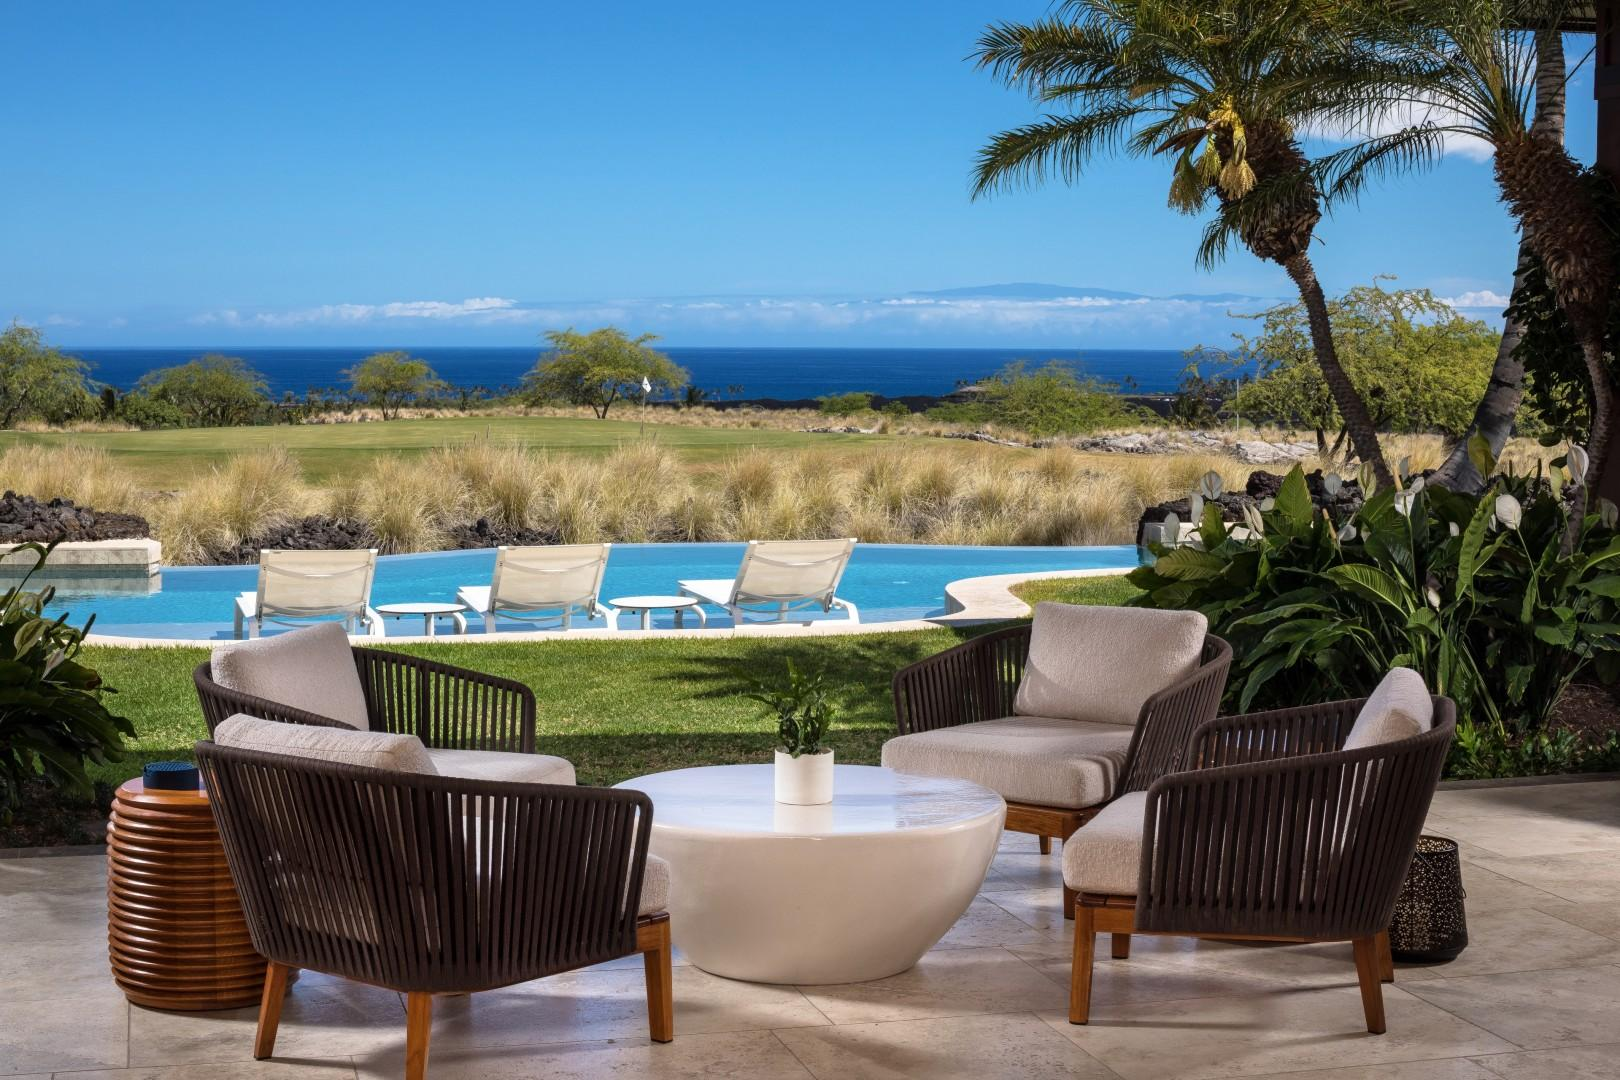 Multiple seating options on the lanai, all with ocean views.